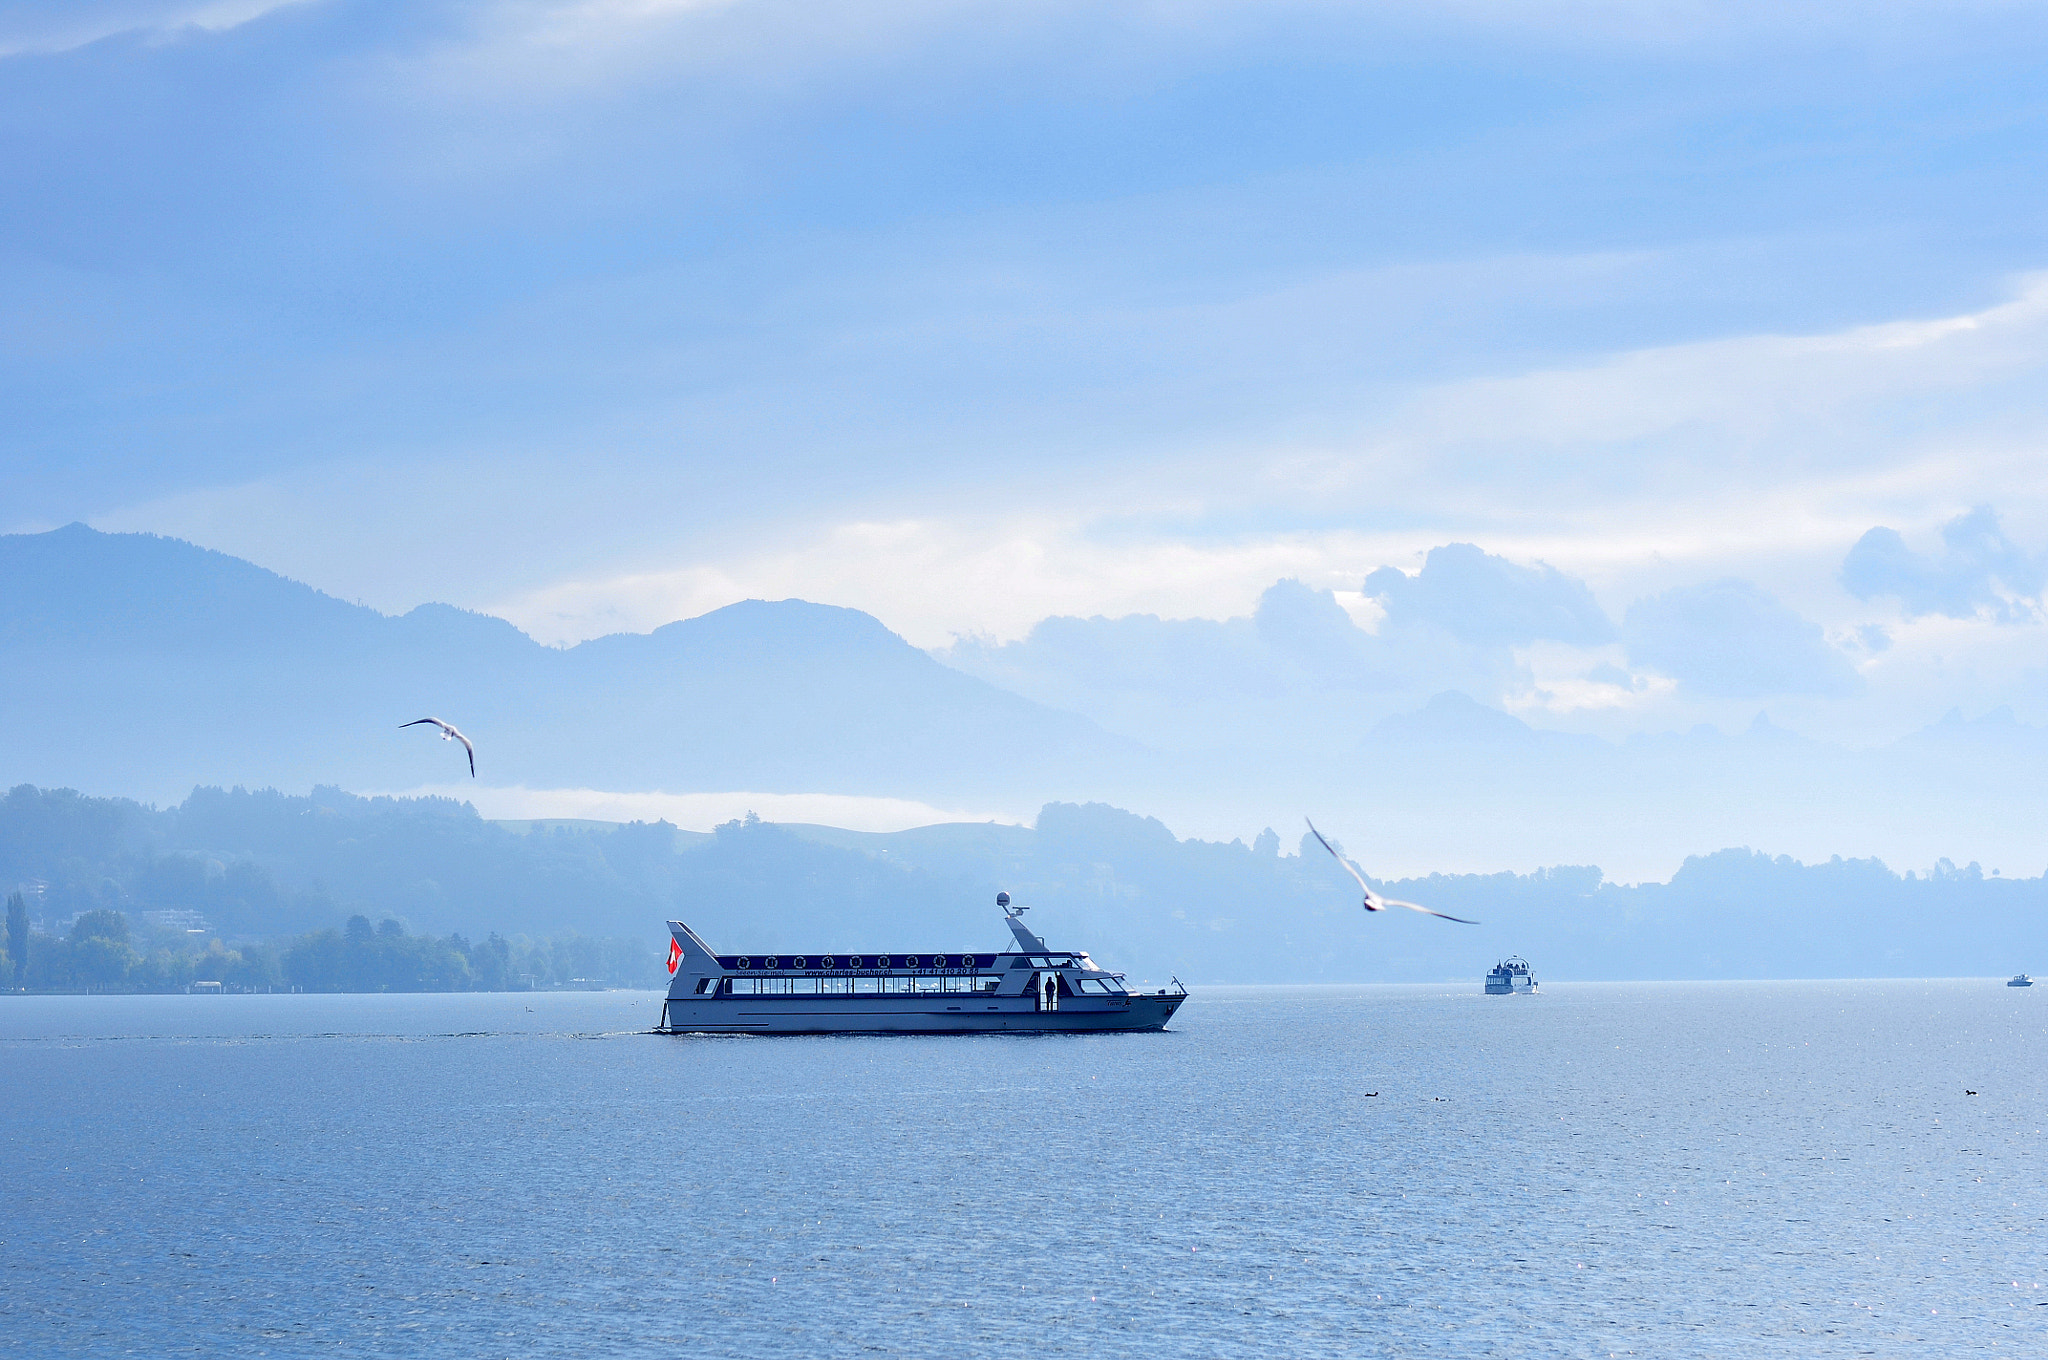 Photograph Cruise on the lake by Pierre Meunier on 500px